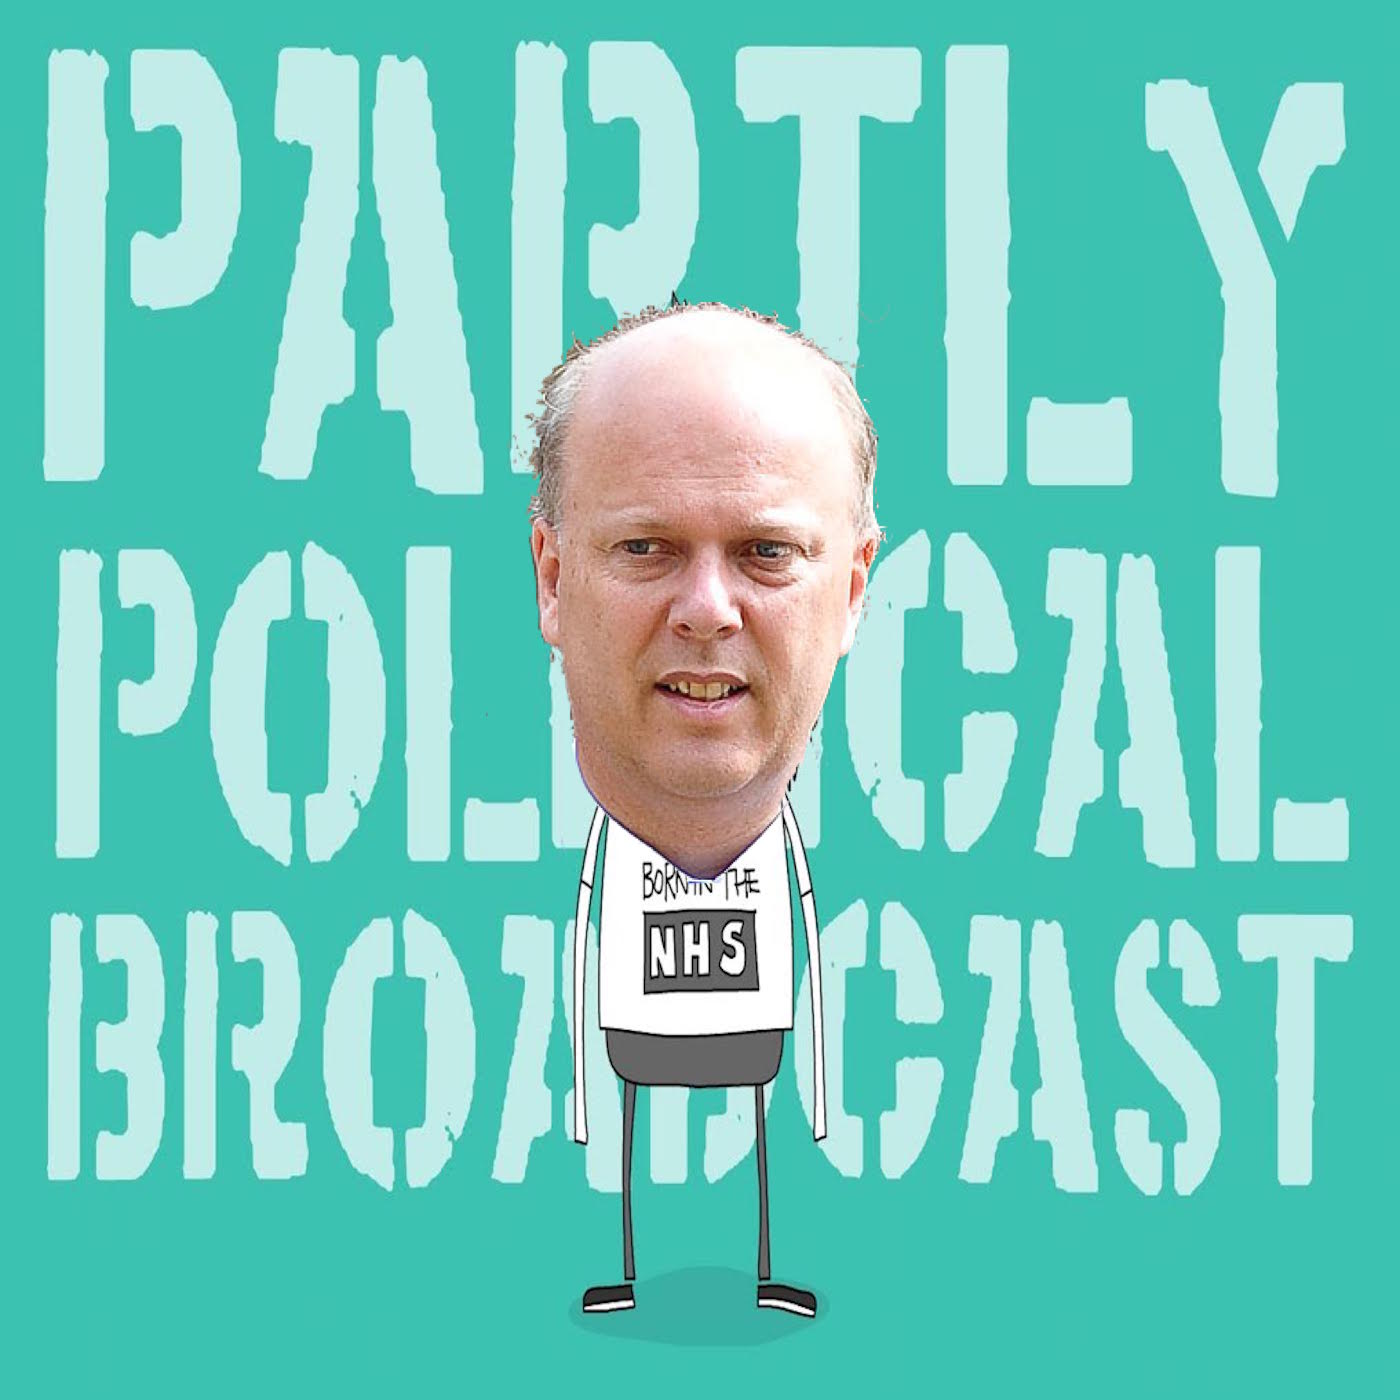 Episode 133 – Chris Grayling Special – No interviewee, bad editing, some terrible writing but somehow its still here